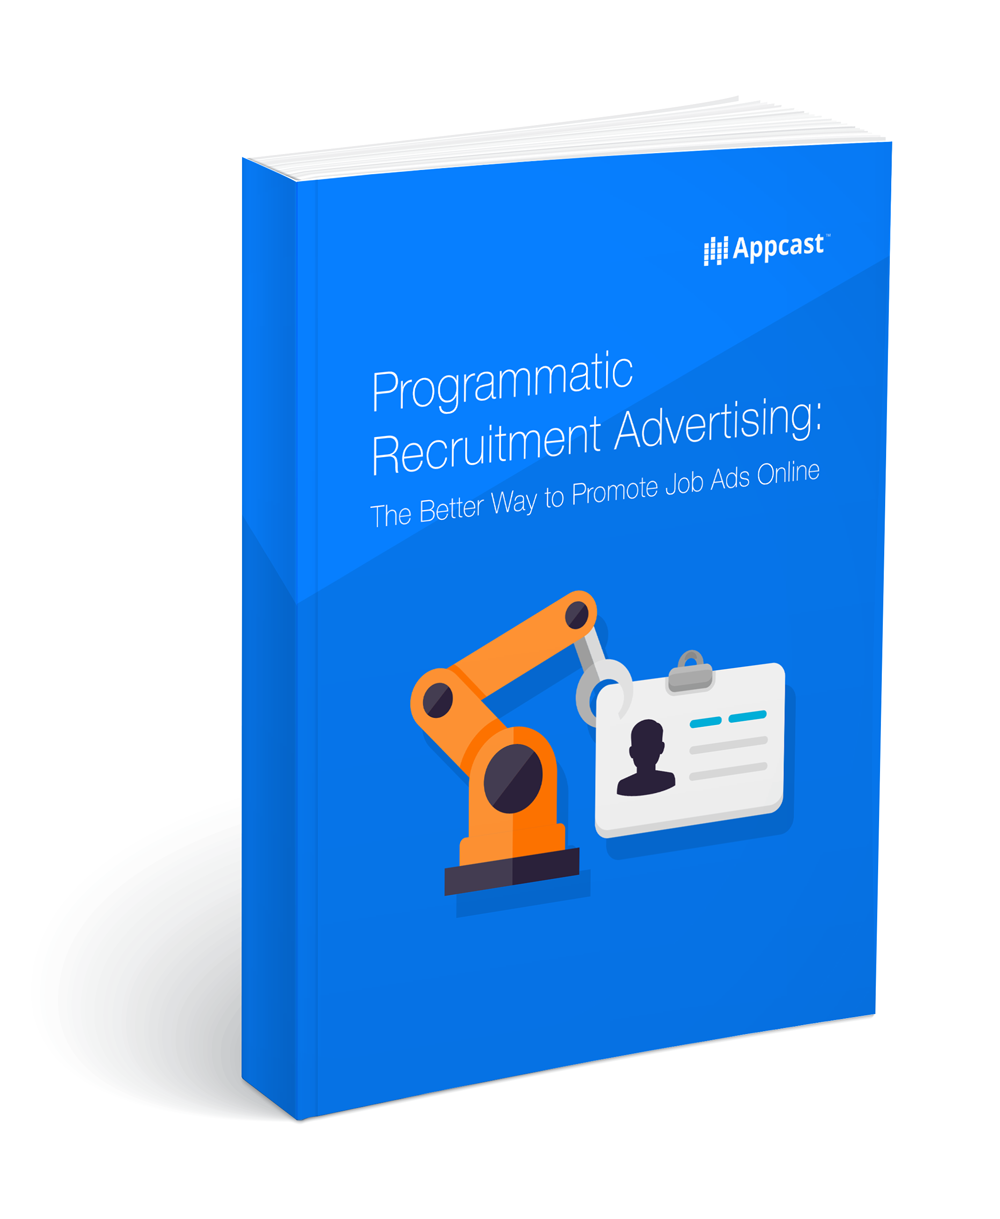 Programmatic Recruitment Advertising: The Better Way to Promote Job Ads Online